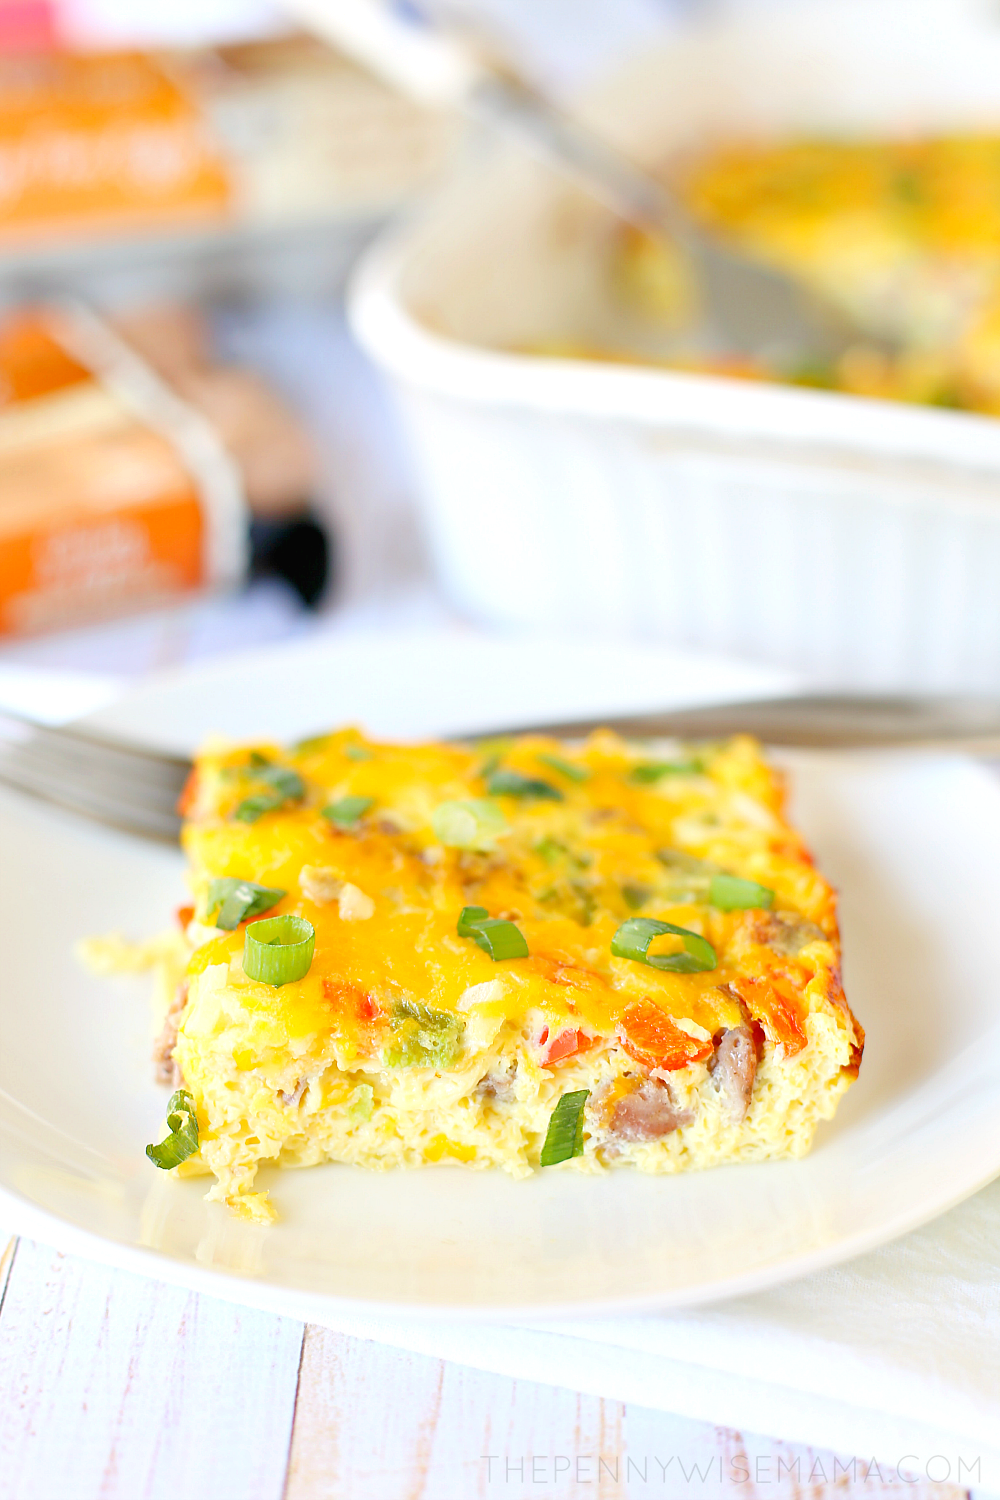 Low Carb Sausage Egg & Cheese Casserole - a delicious and easy recipe!